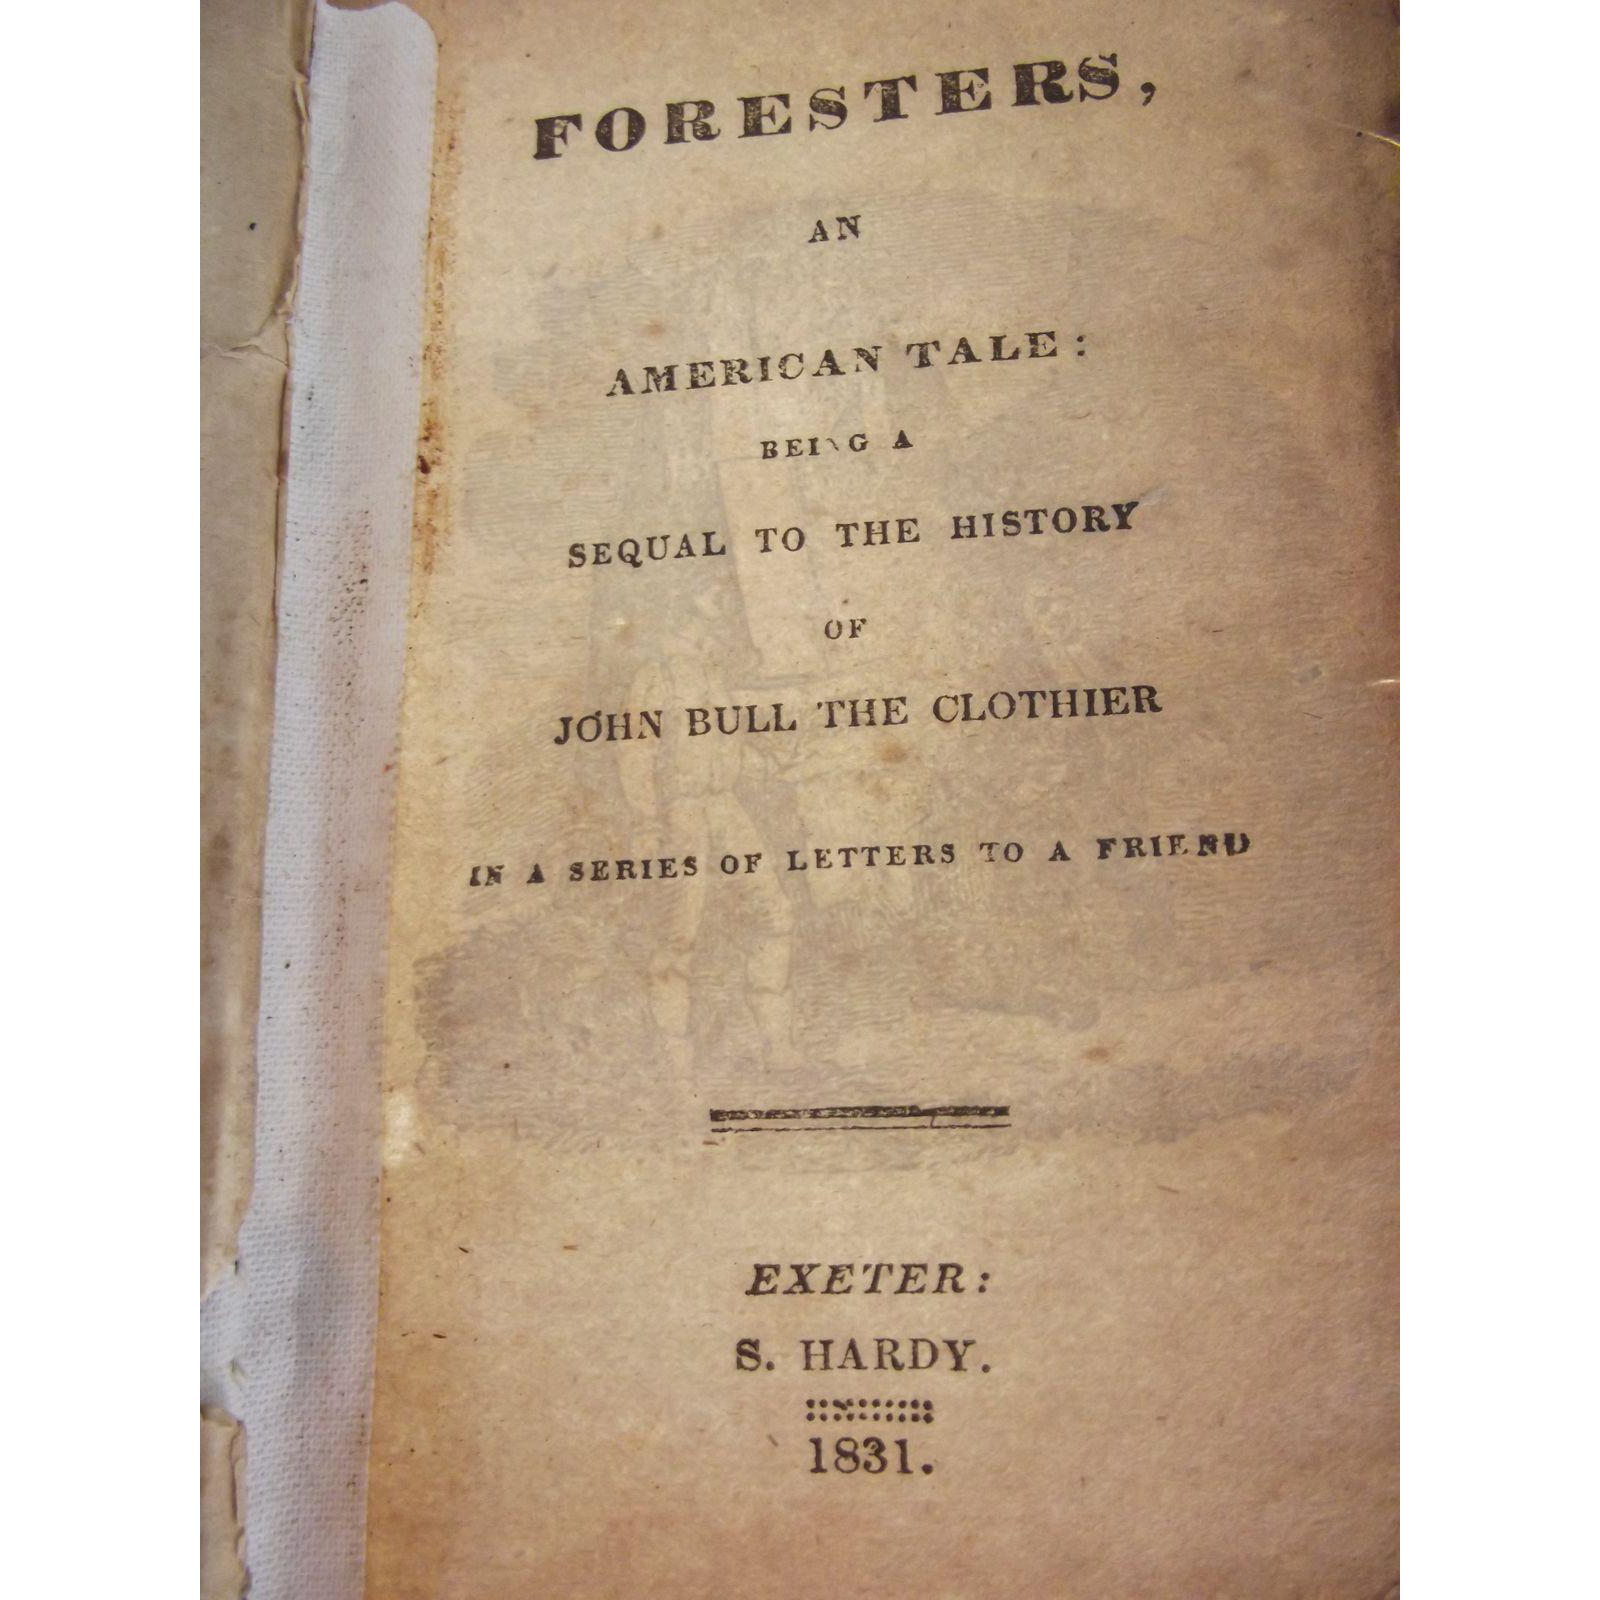 The Foresters 1821